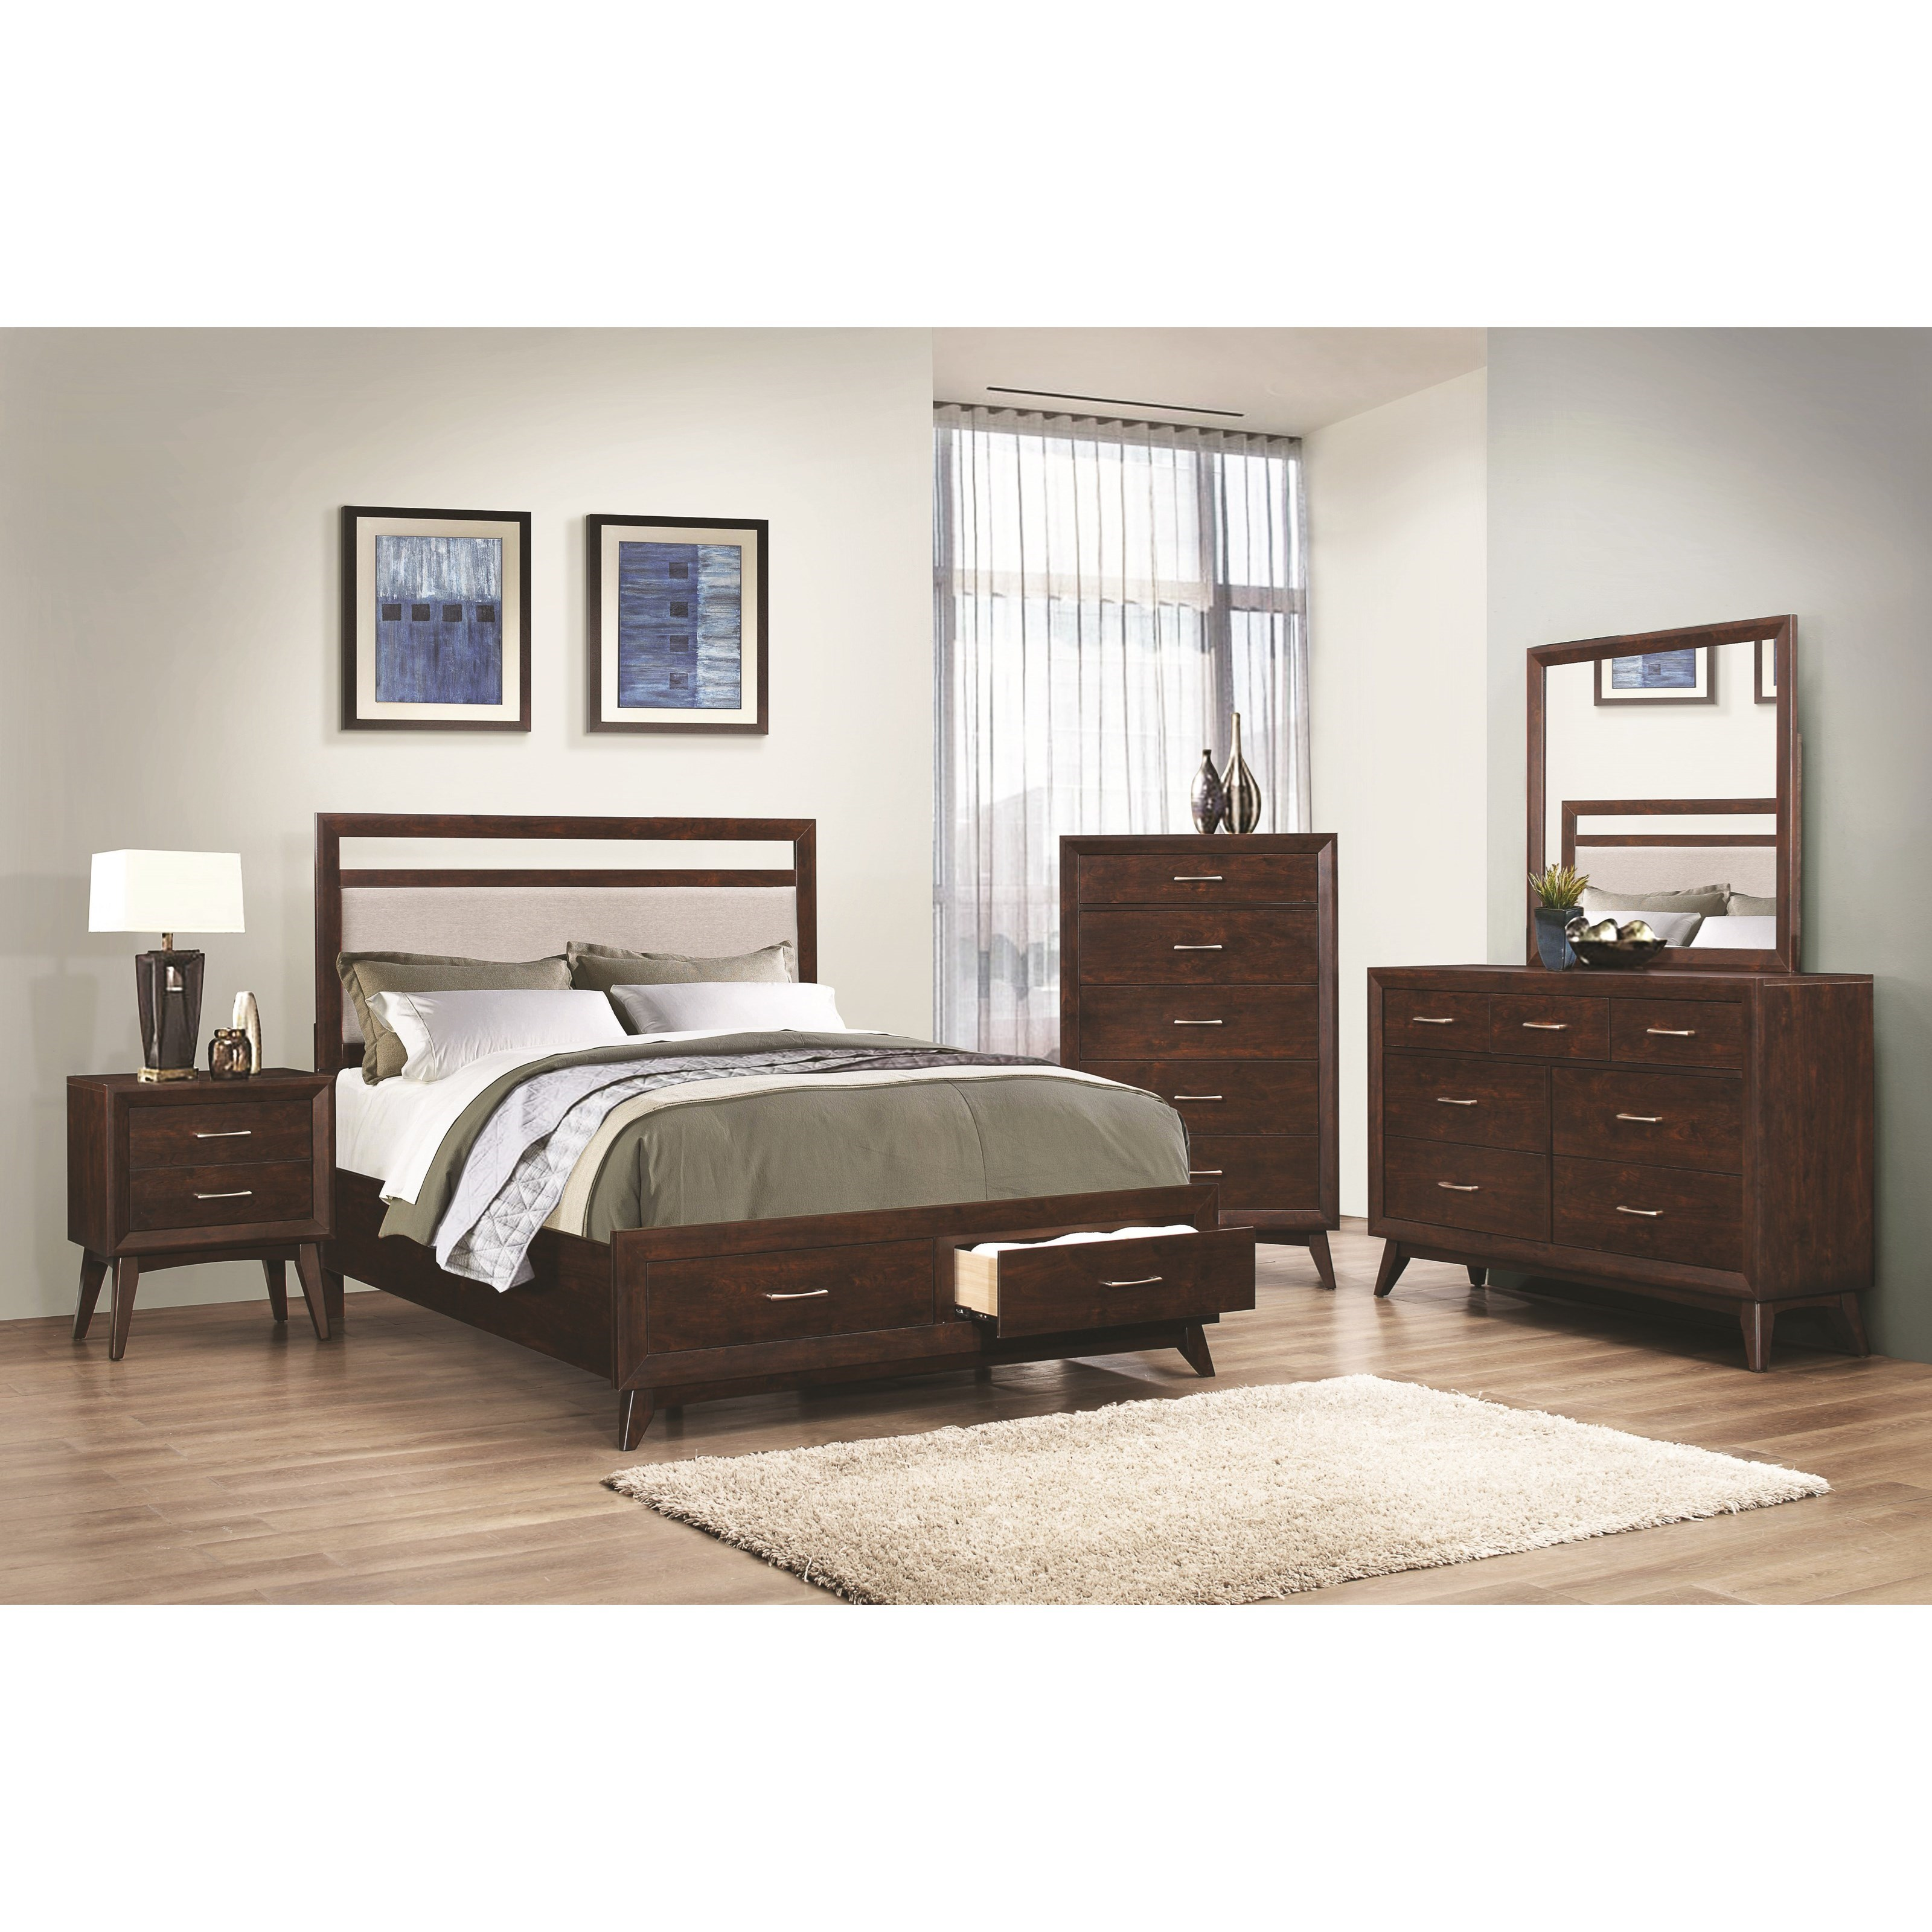 Coaster Carrington California King Bedroom Group - Item Number: 205040 CK Bedroom Group